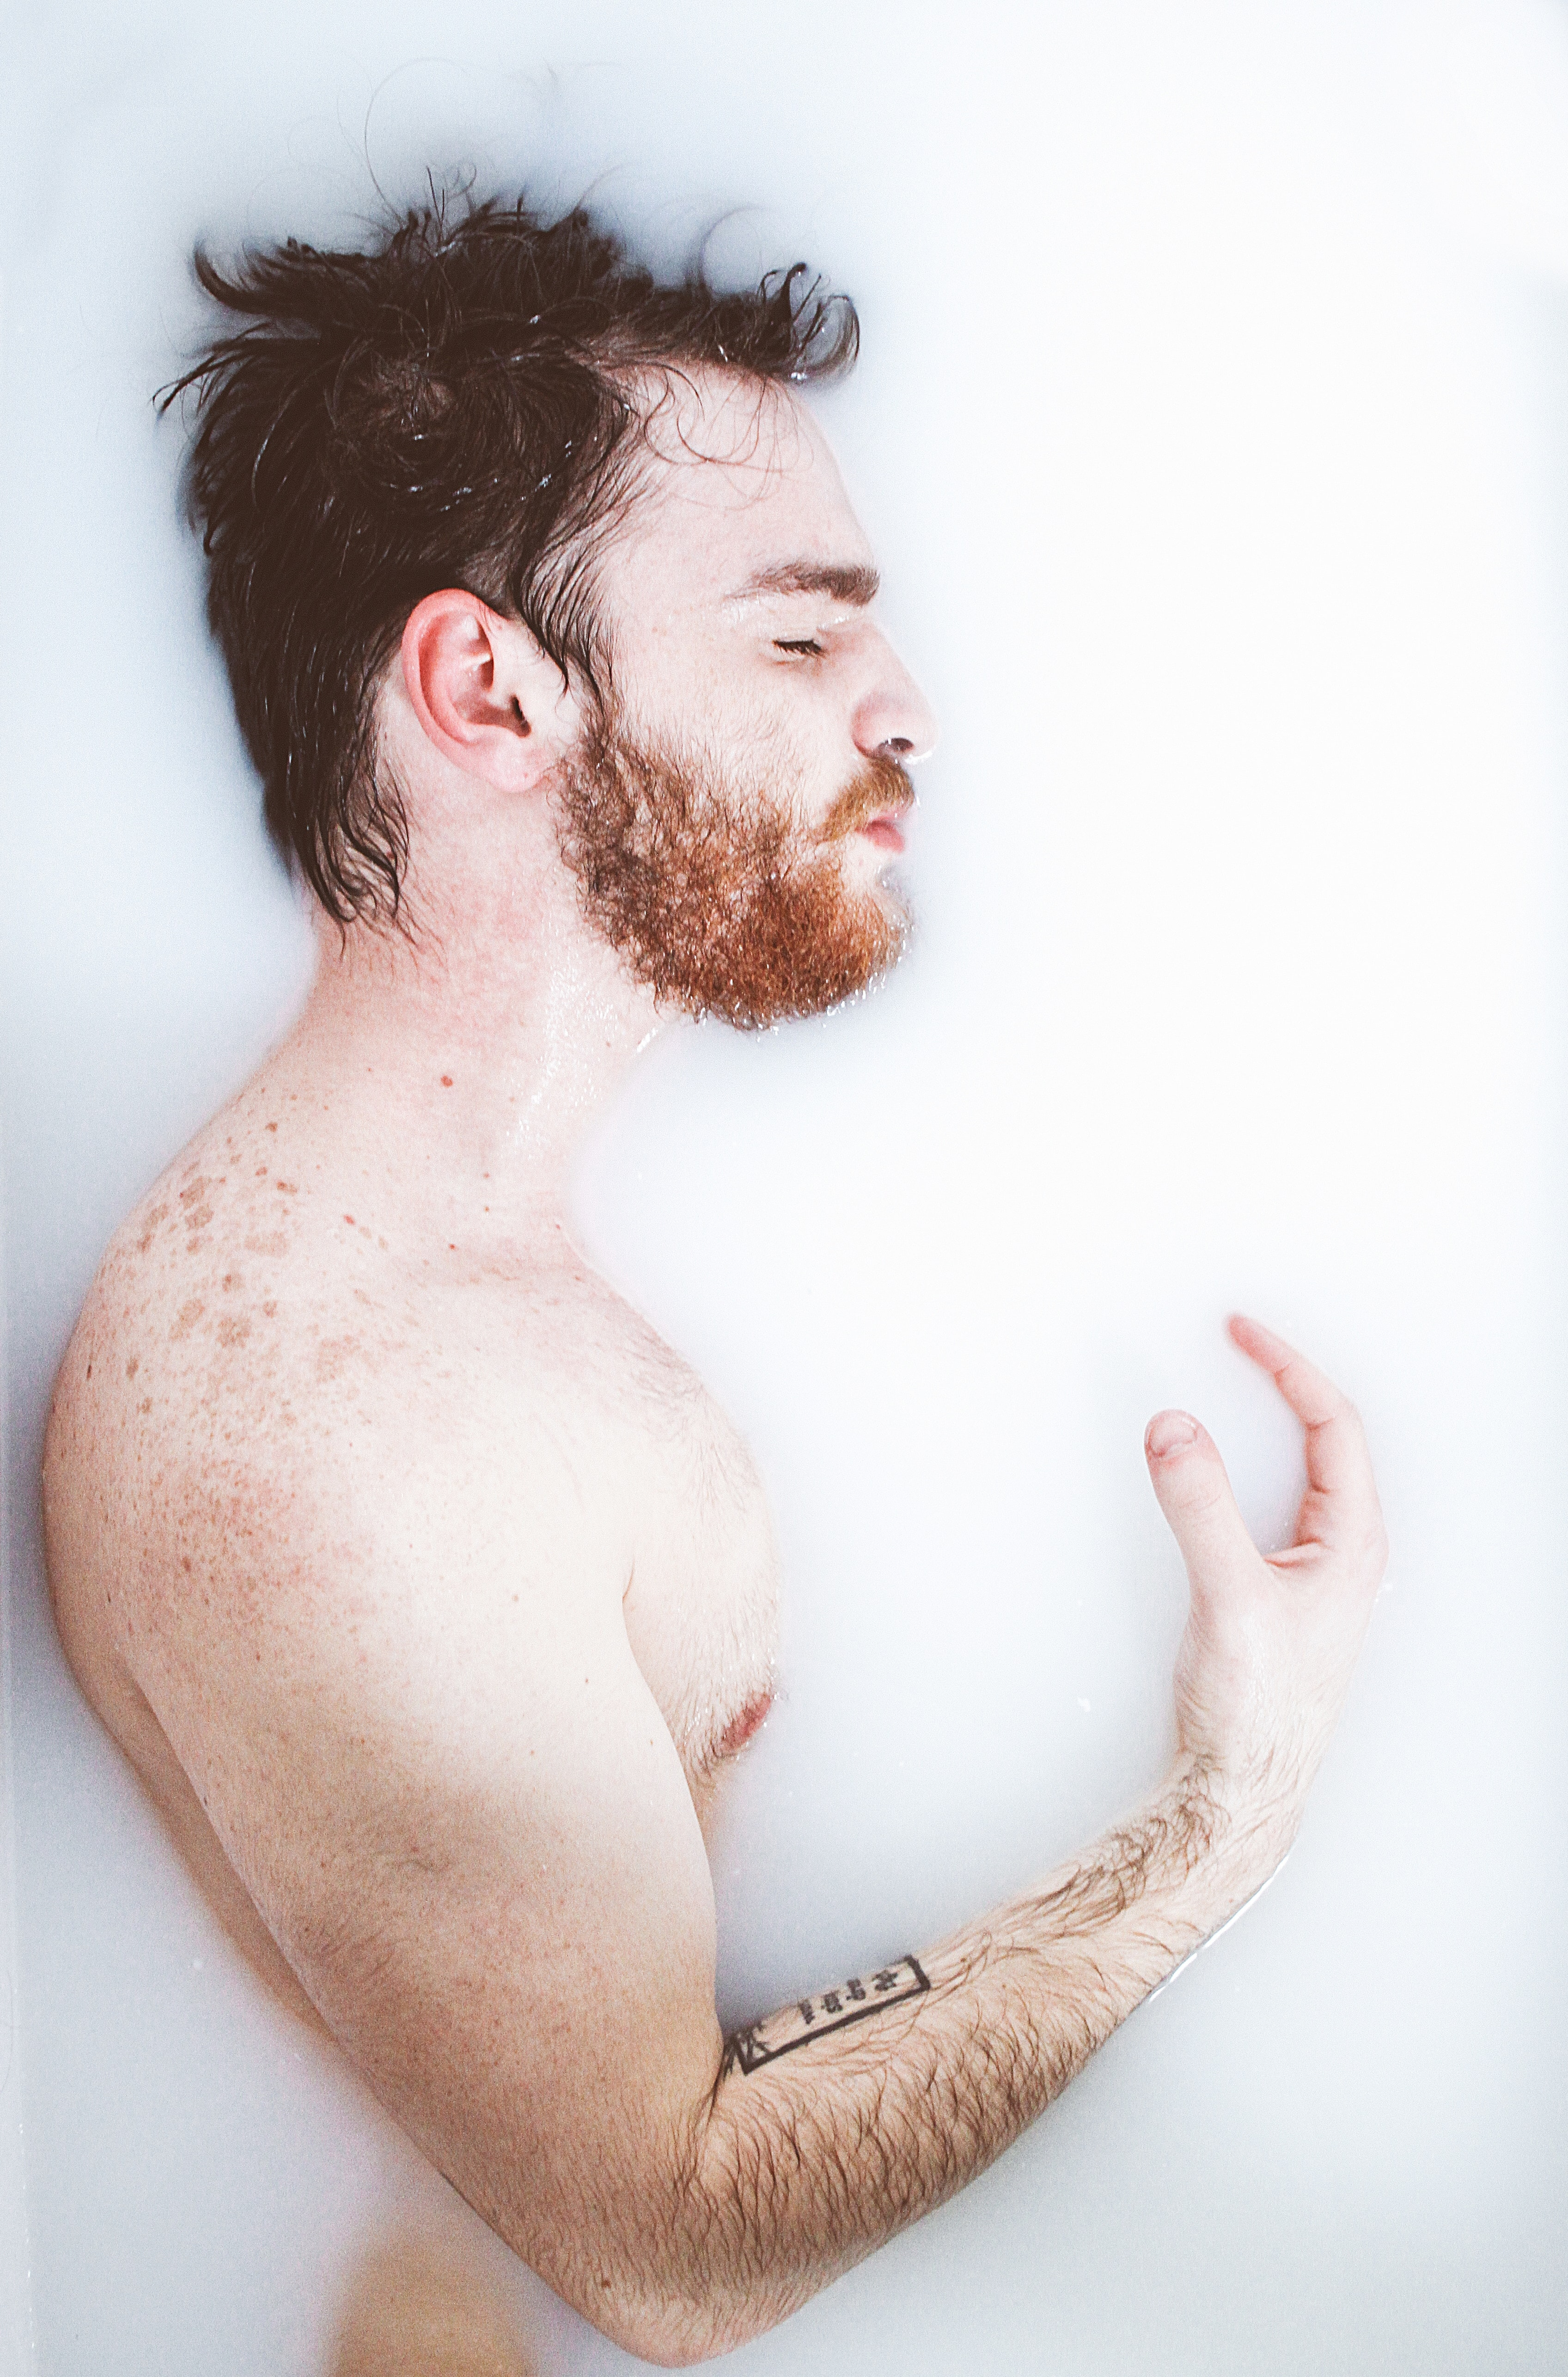 A shirtless bearded man holding his hand up.